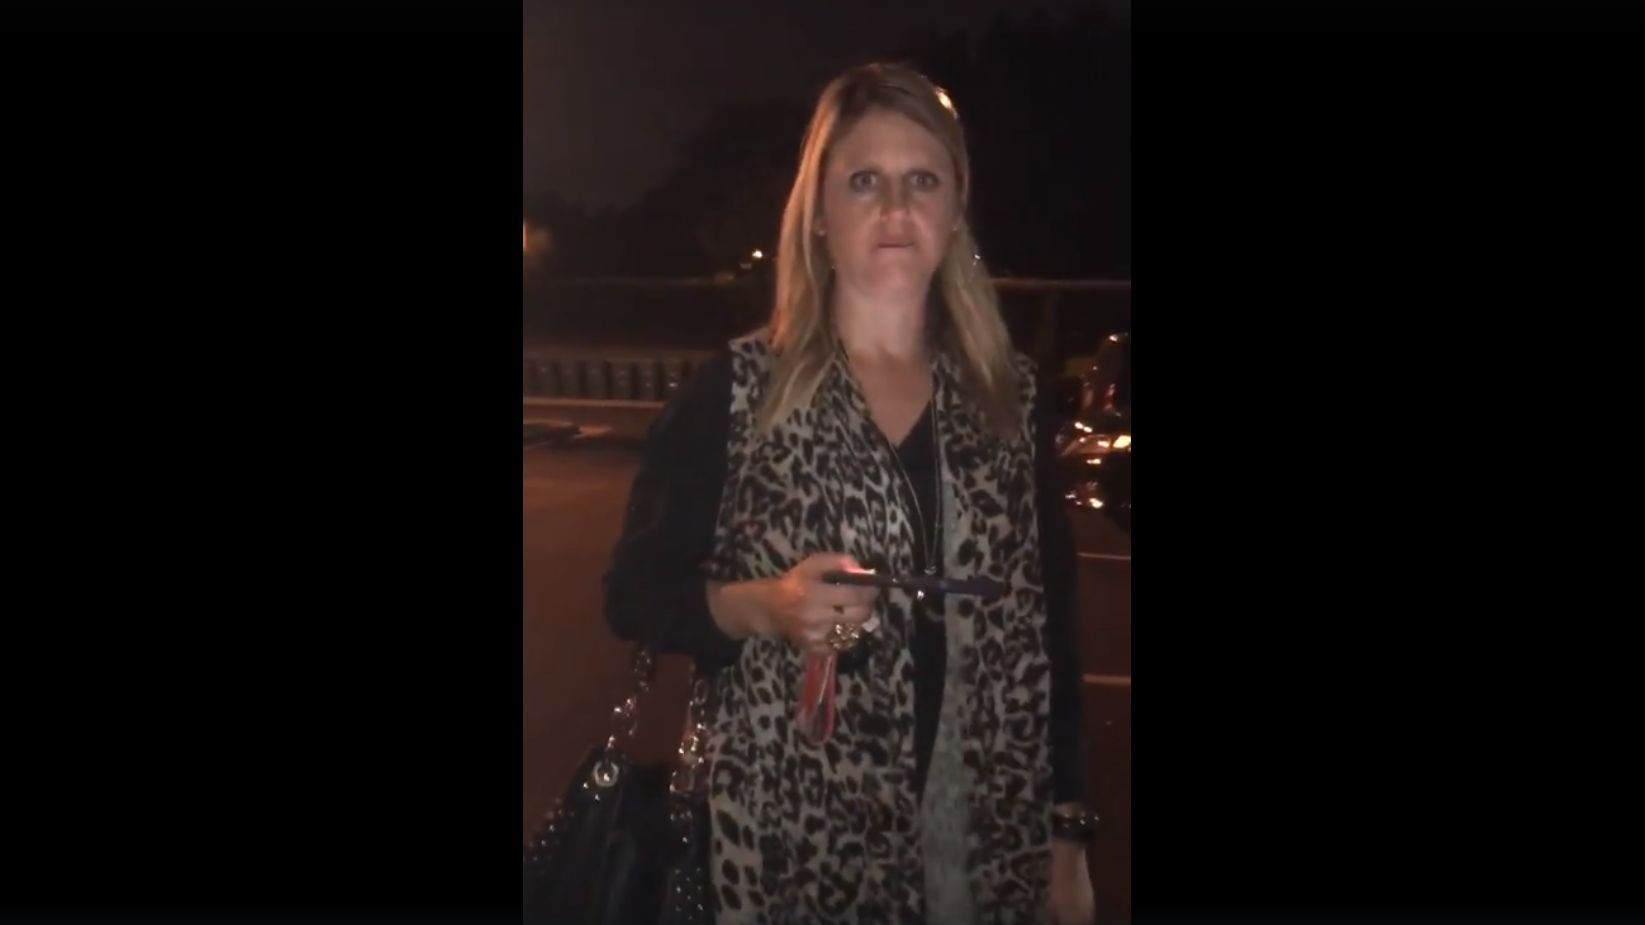 White woman in viral racist rant facing 911 violation charge